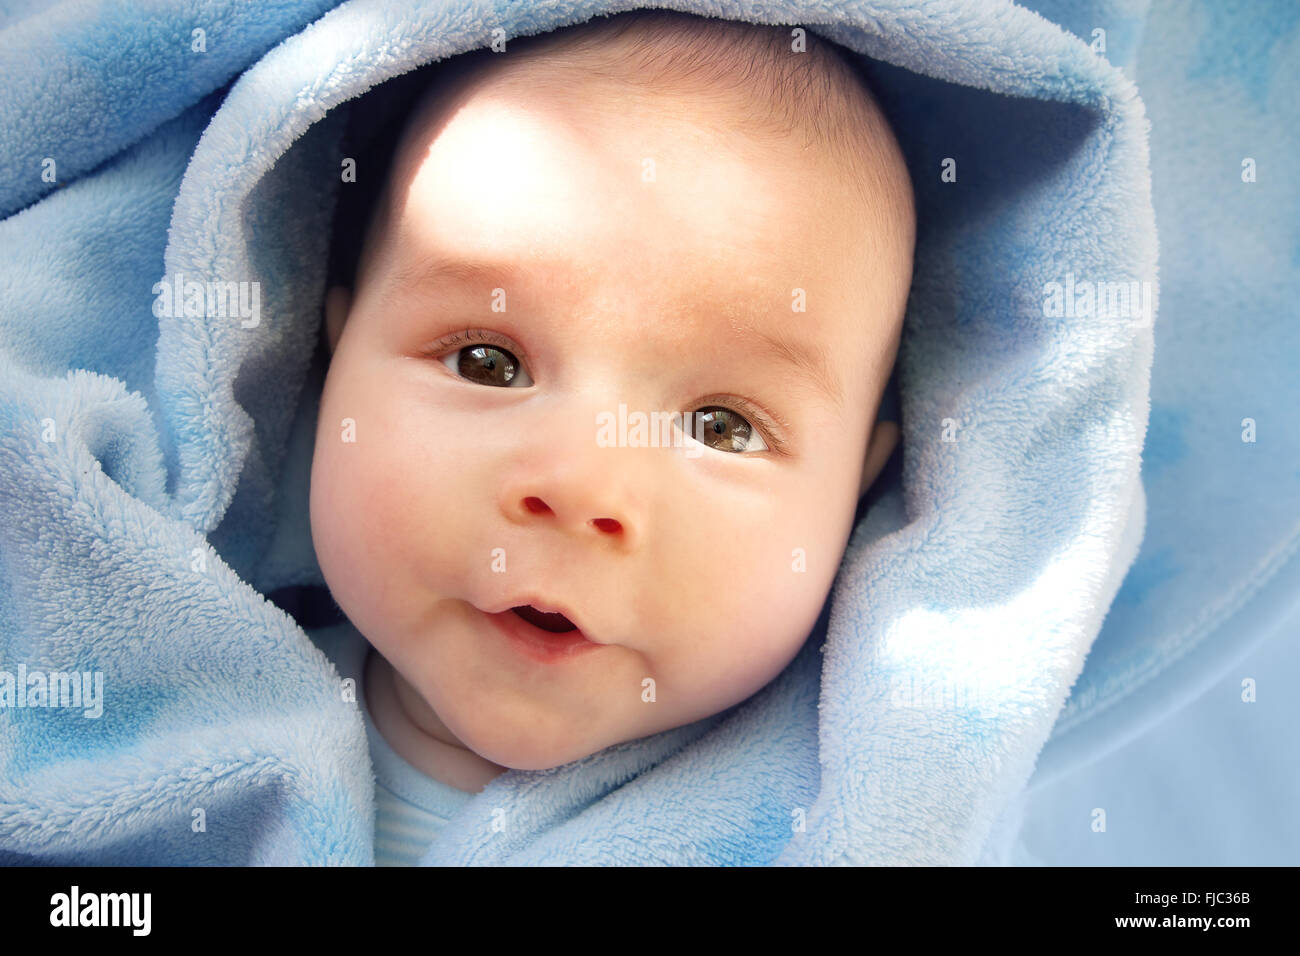 three month old baby wrapped in blue blanket - Stock Image